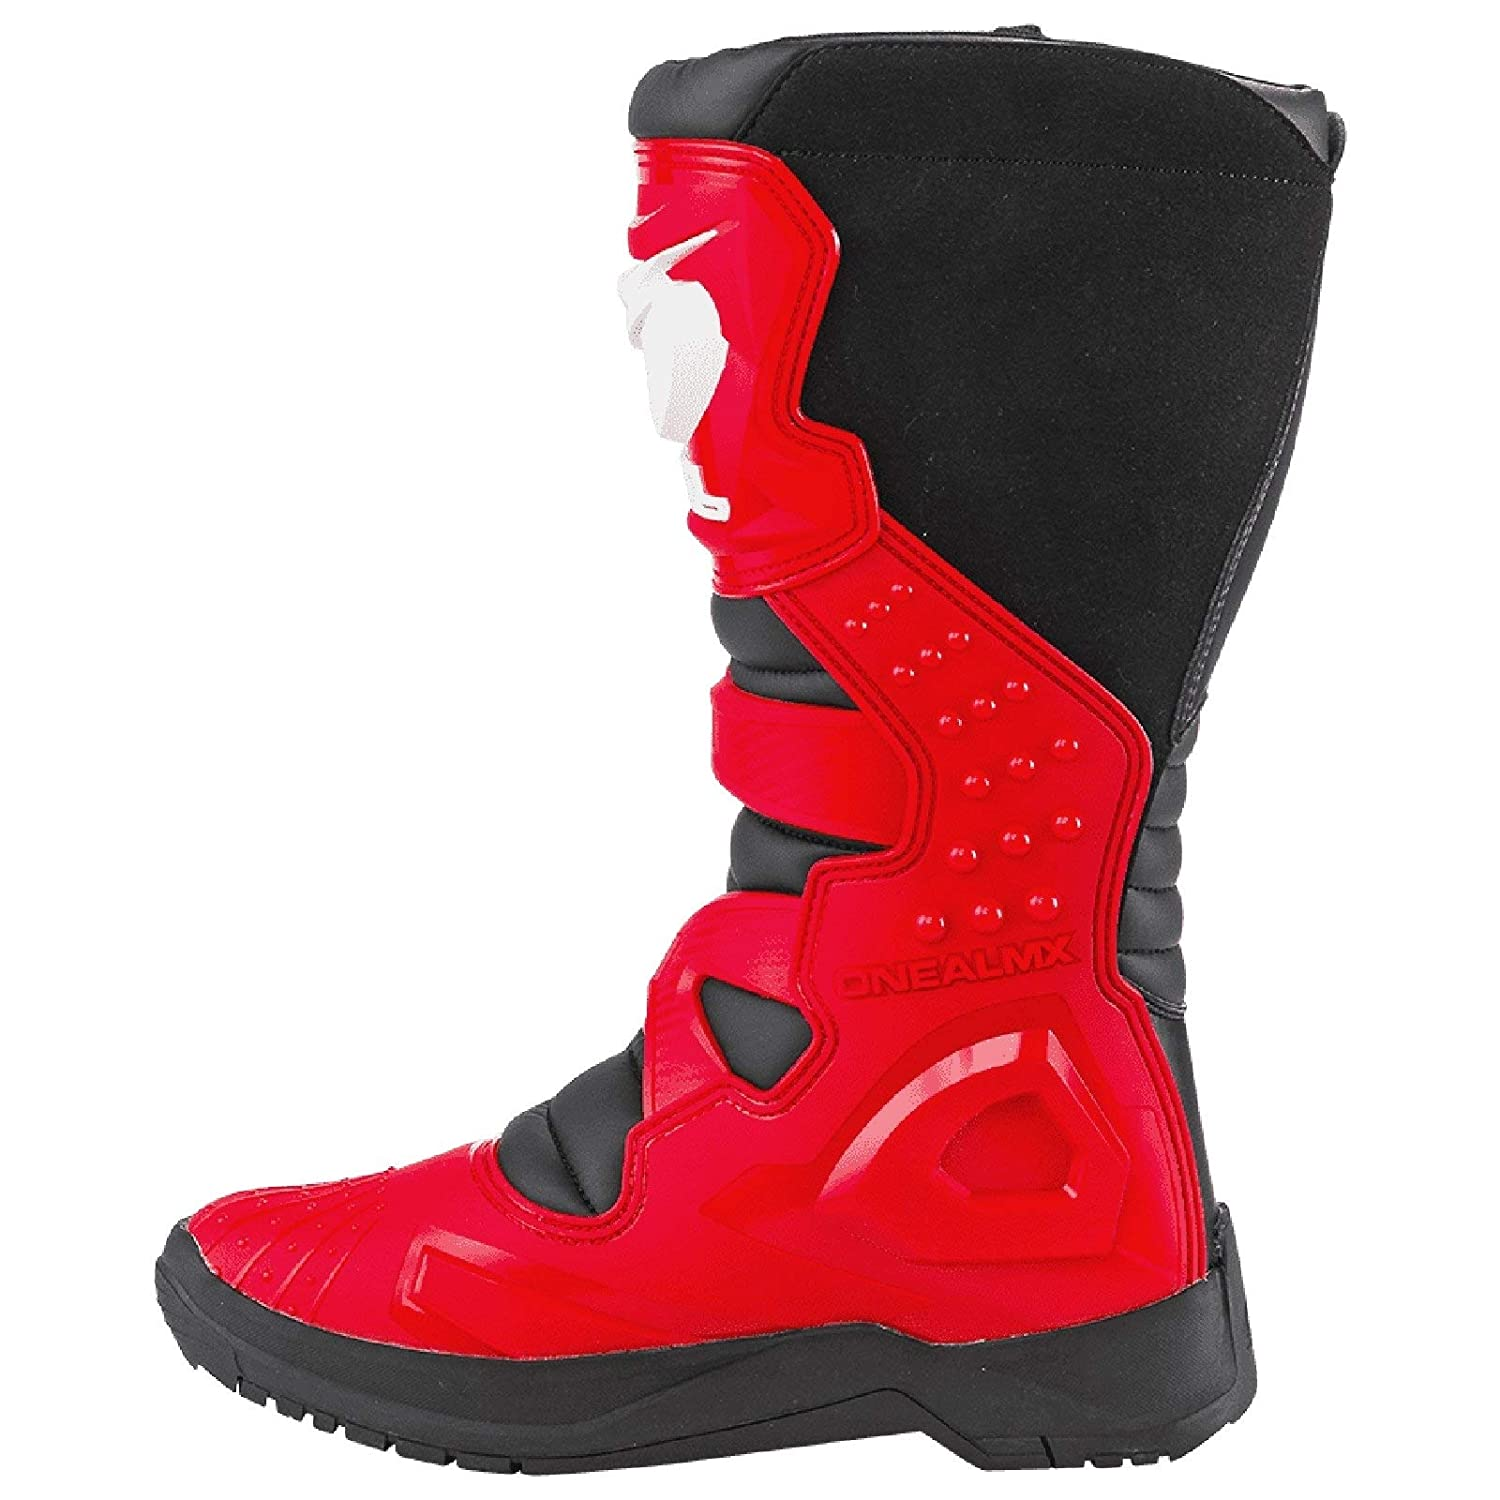 Rot 44 0334-1 ONeal Unisex Motocross Stiefel RSX Boot